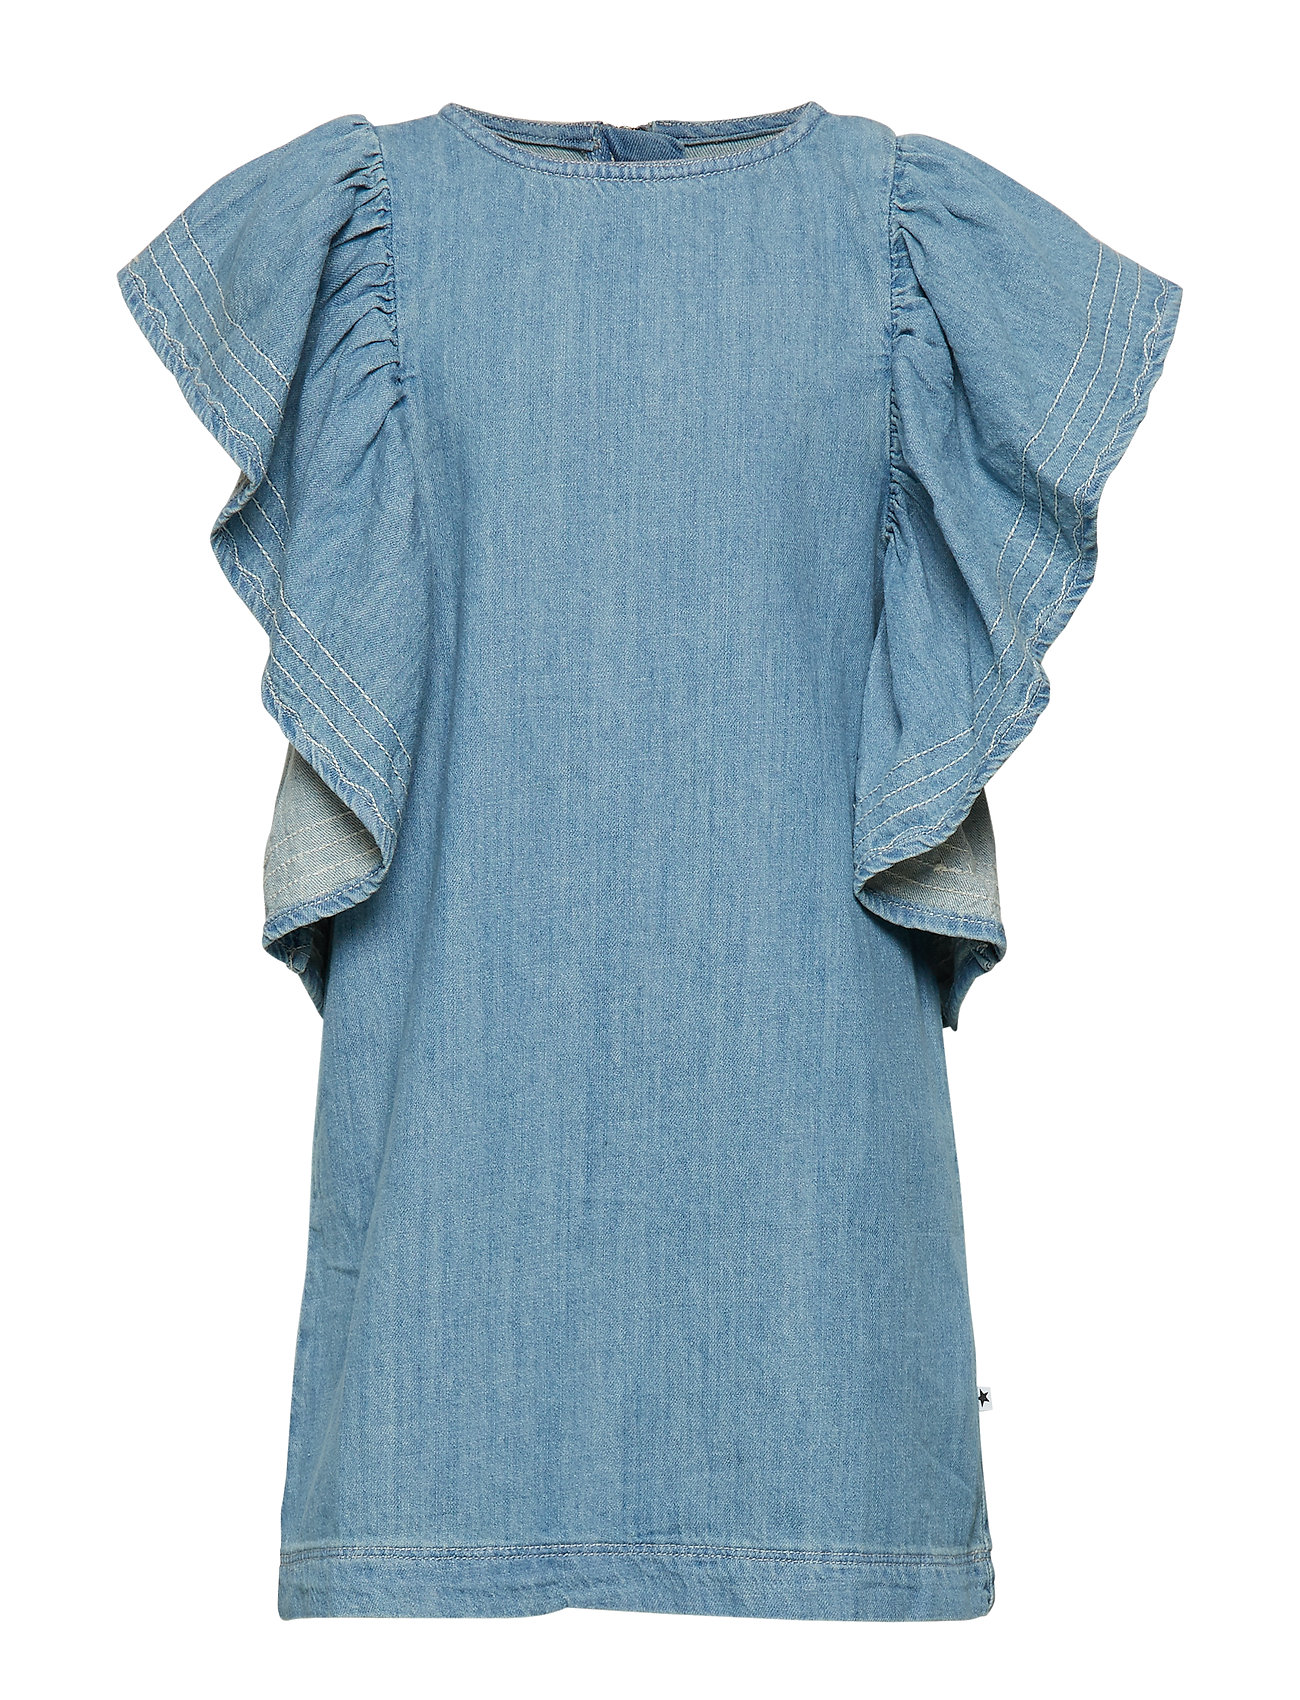 Molo Candis - WASHED DENIM BLUE